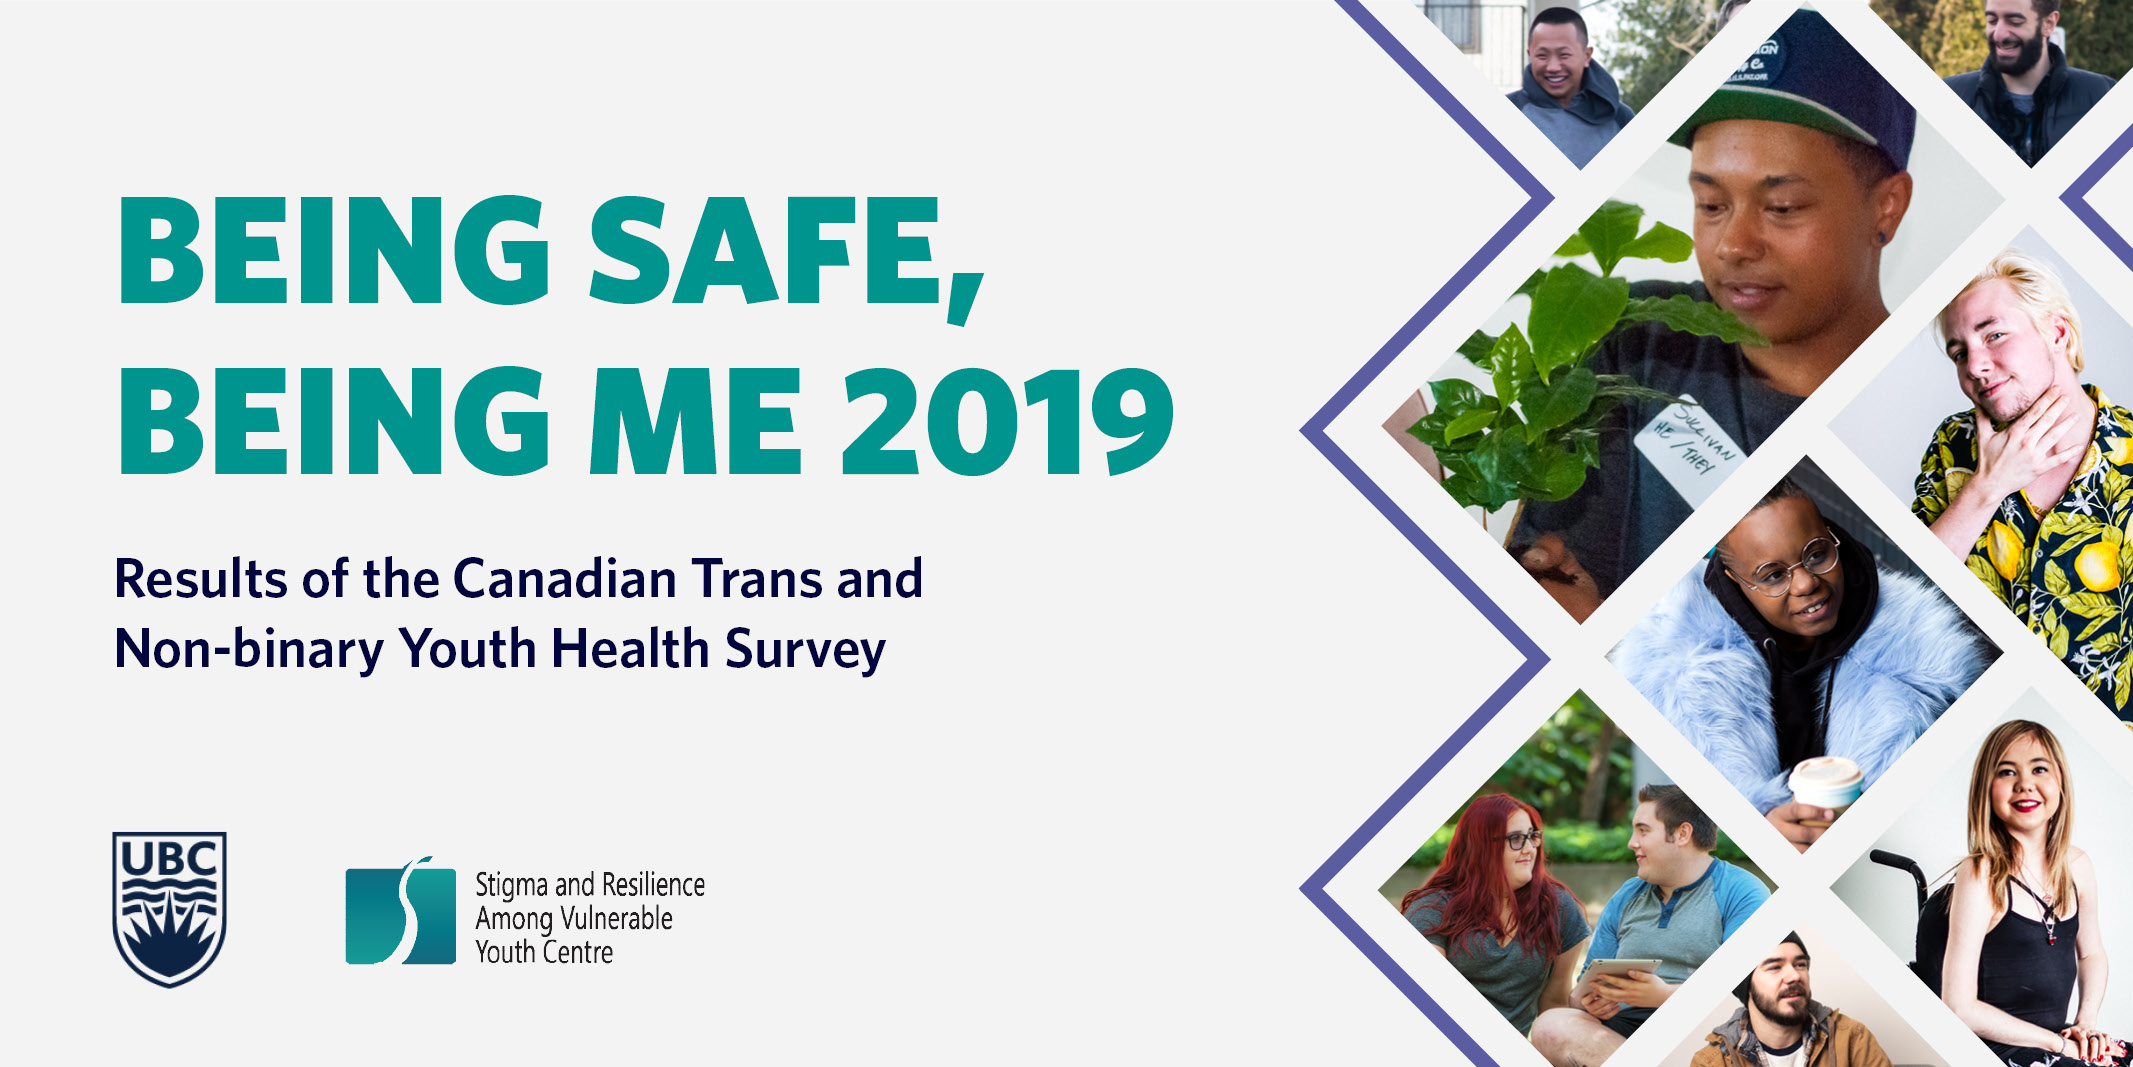 "On the left is text that reads, ""Being safe, being me 2019: Results of the Canadian Trans and Non-binary Youth Health Survey."" Below the text is a UBC logo and SARAVYC logo. To the right are 8 different images of youth."